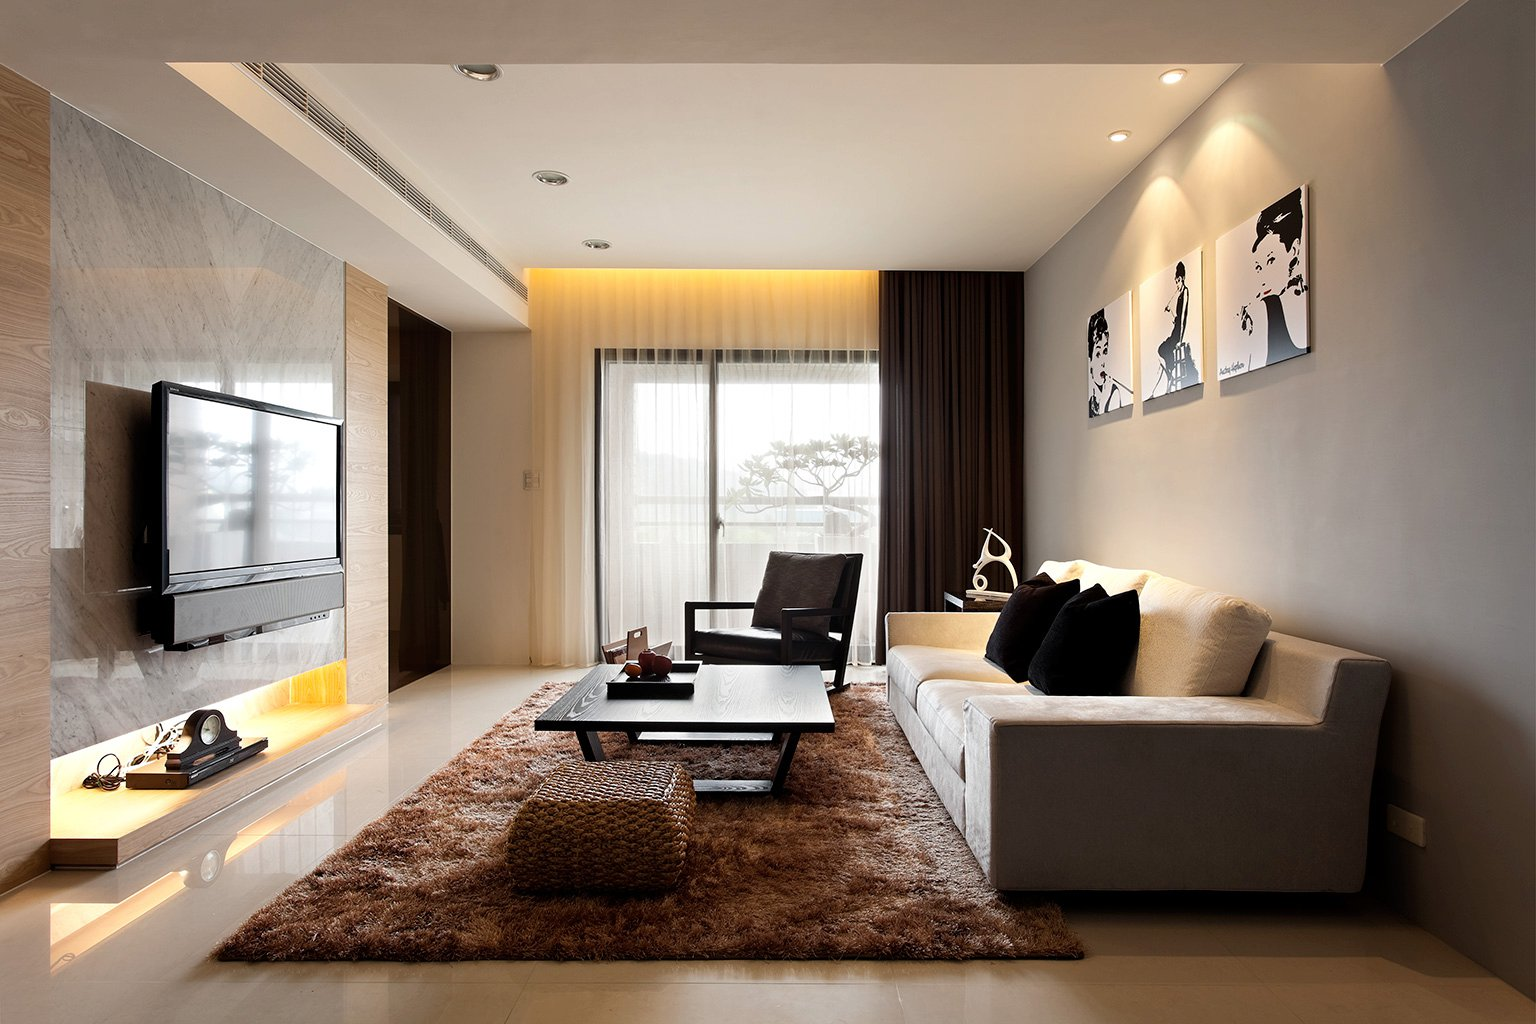 Living Room Decorated Living Room living rooms room decorating interiorcoolinfo decor decor